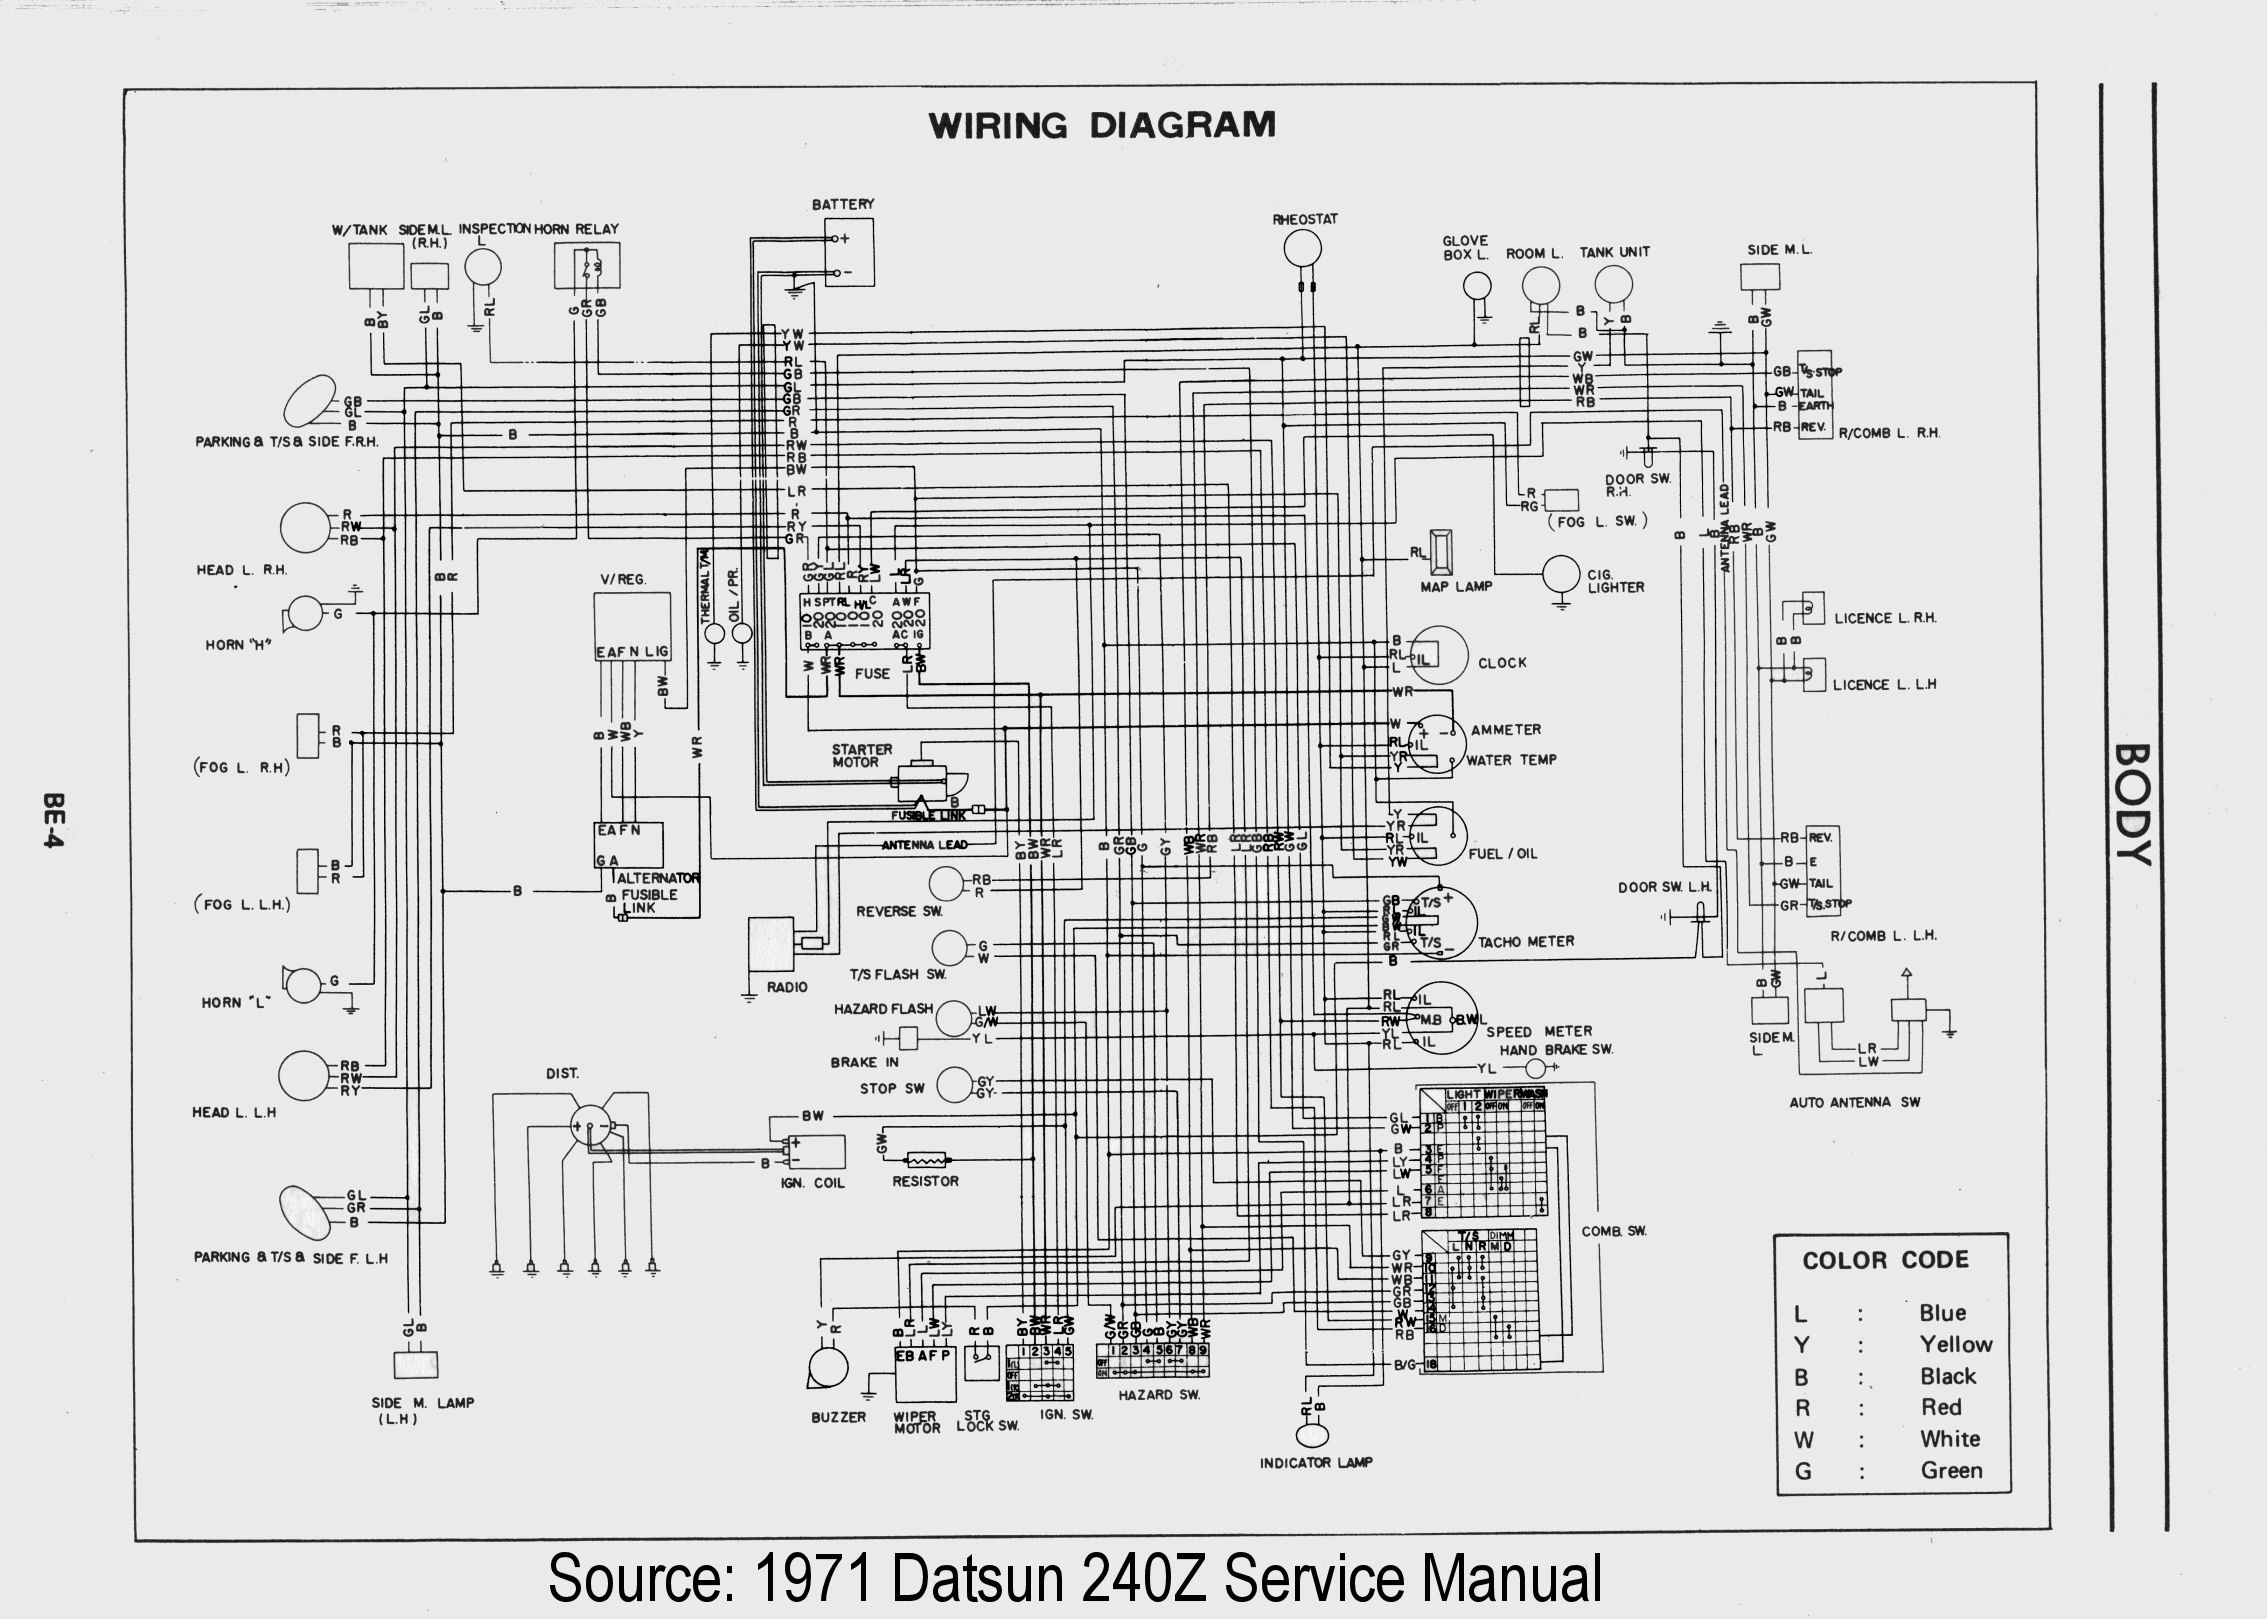 Generic Wiring Troubleshooting Checklist Woodworkerb Home Exterior Fuse Box 1971 Datsun 240z Diagram